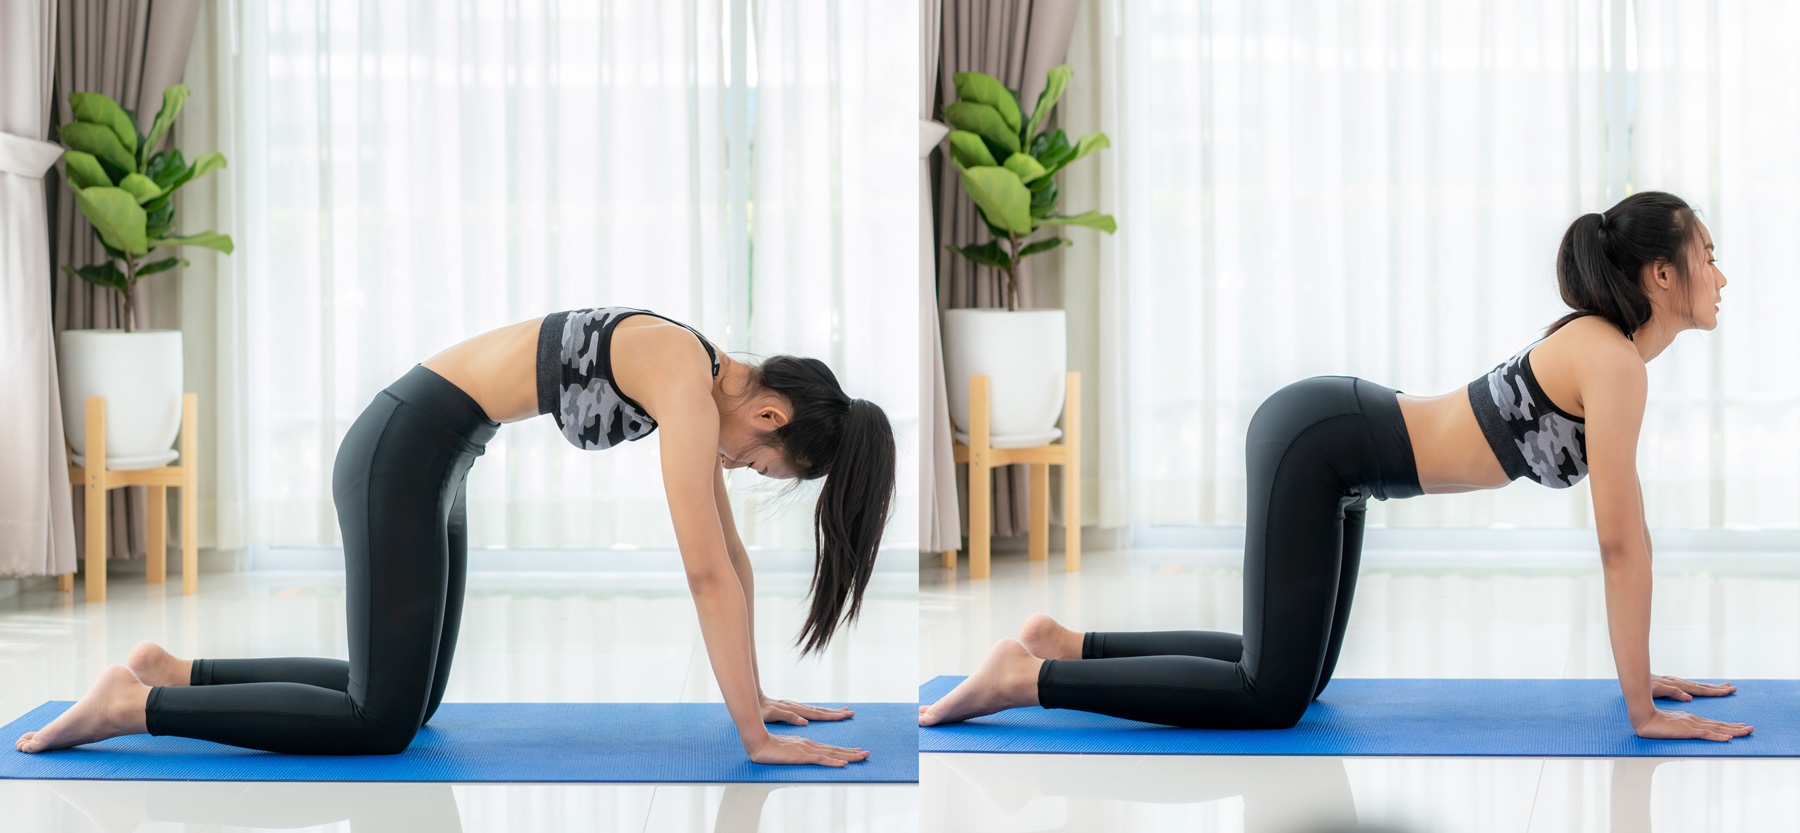 Yoga Poses to Relieve Muscle Tension: cat/cow yoga stretch